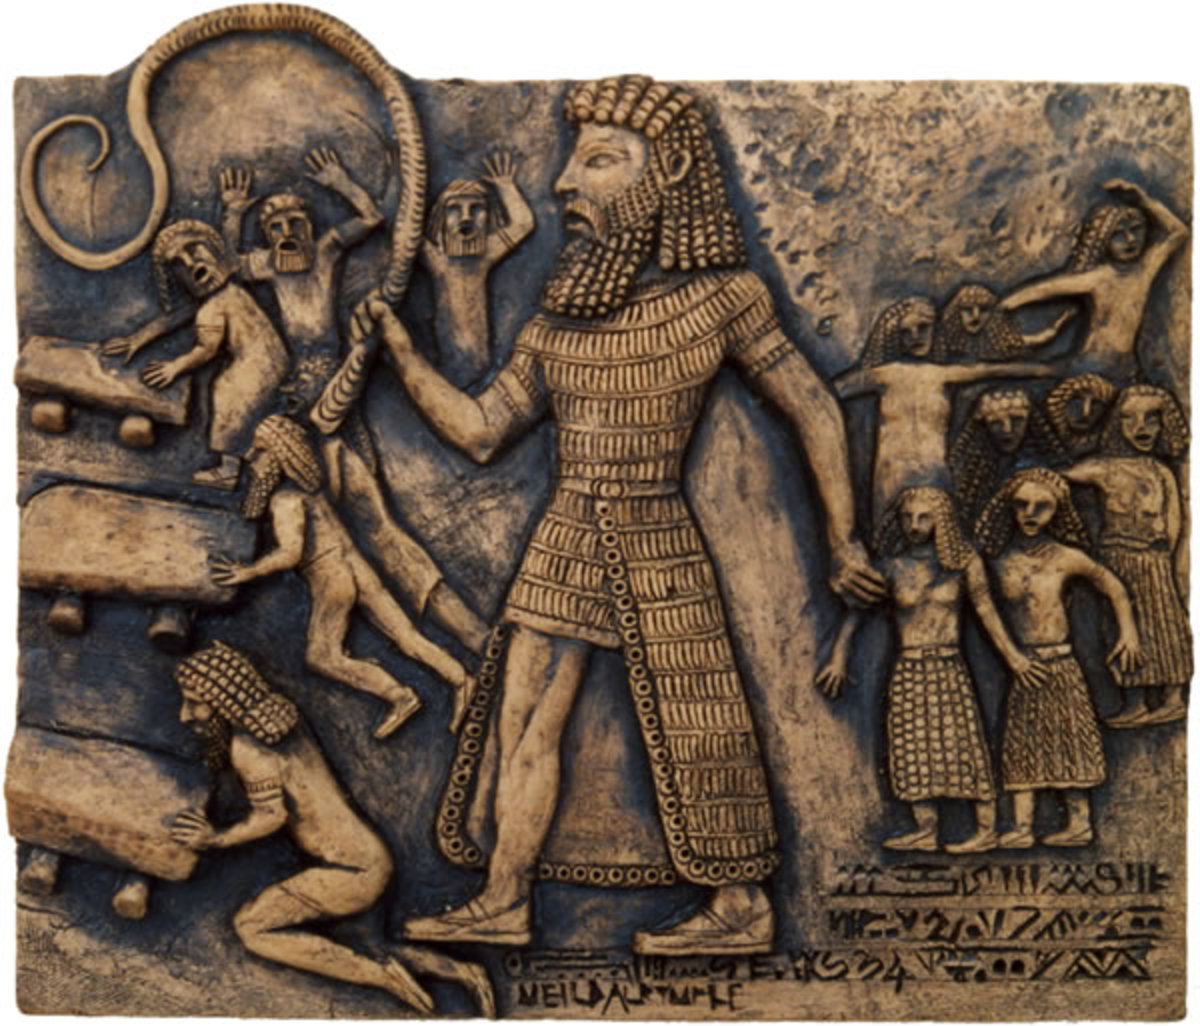 Gilgamesh Working the Men while Taking the Women